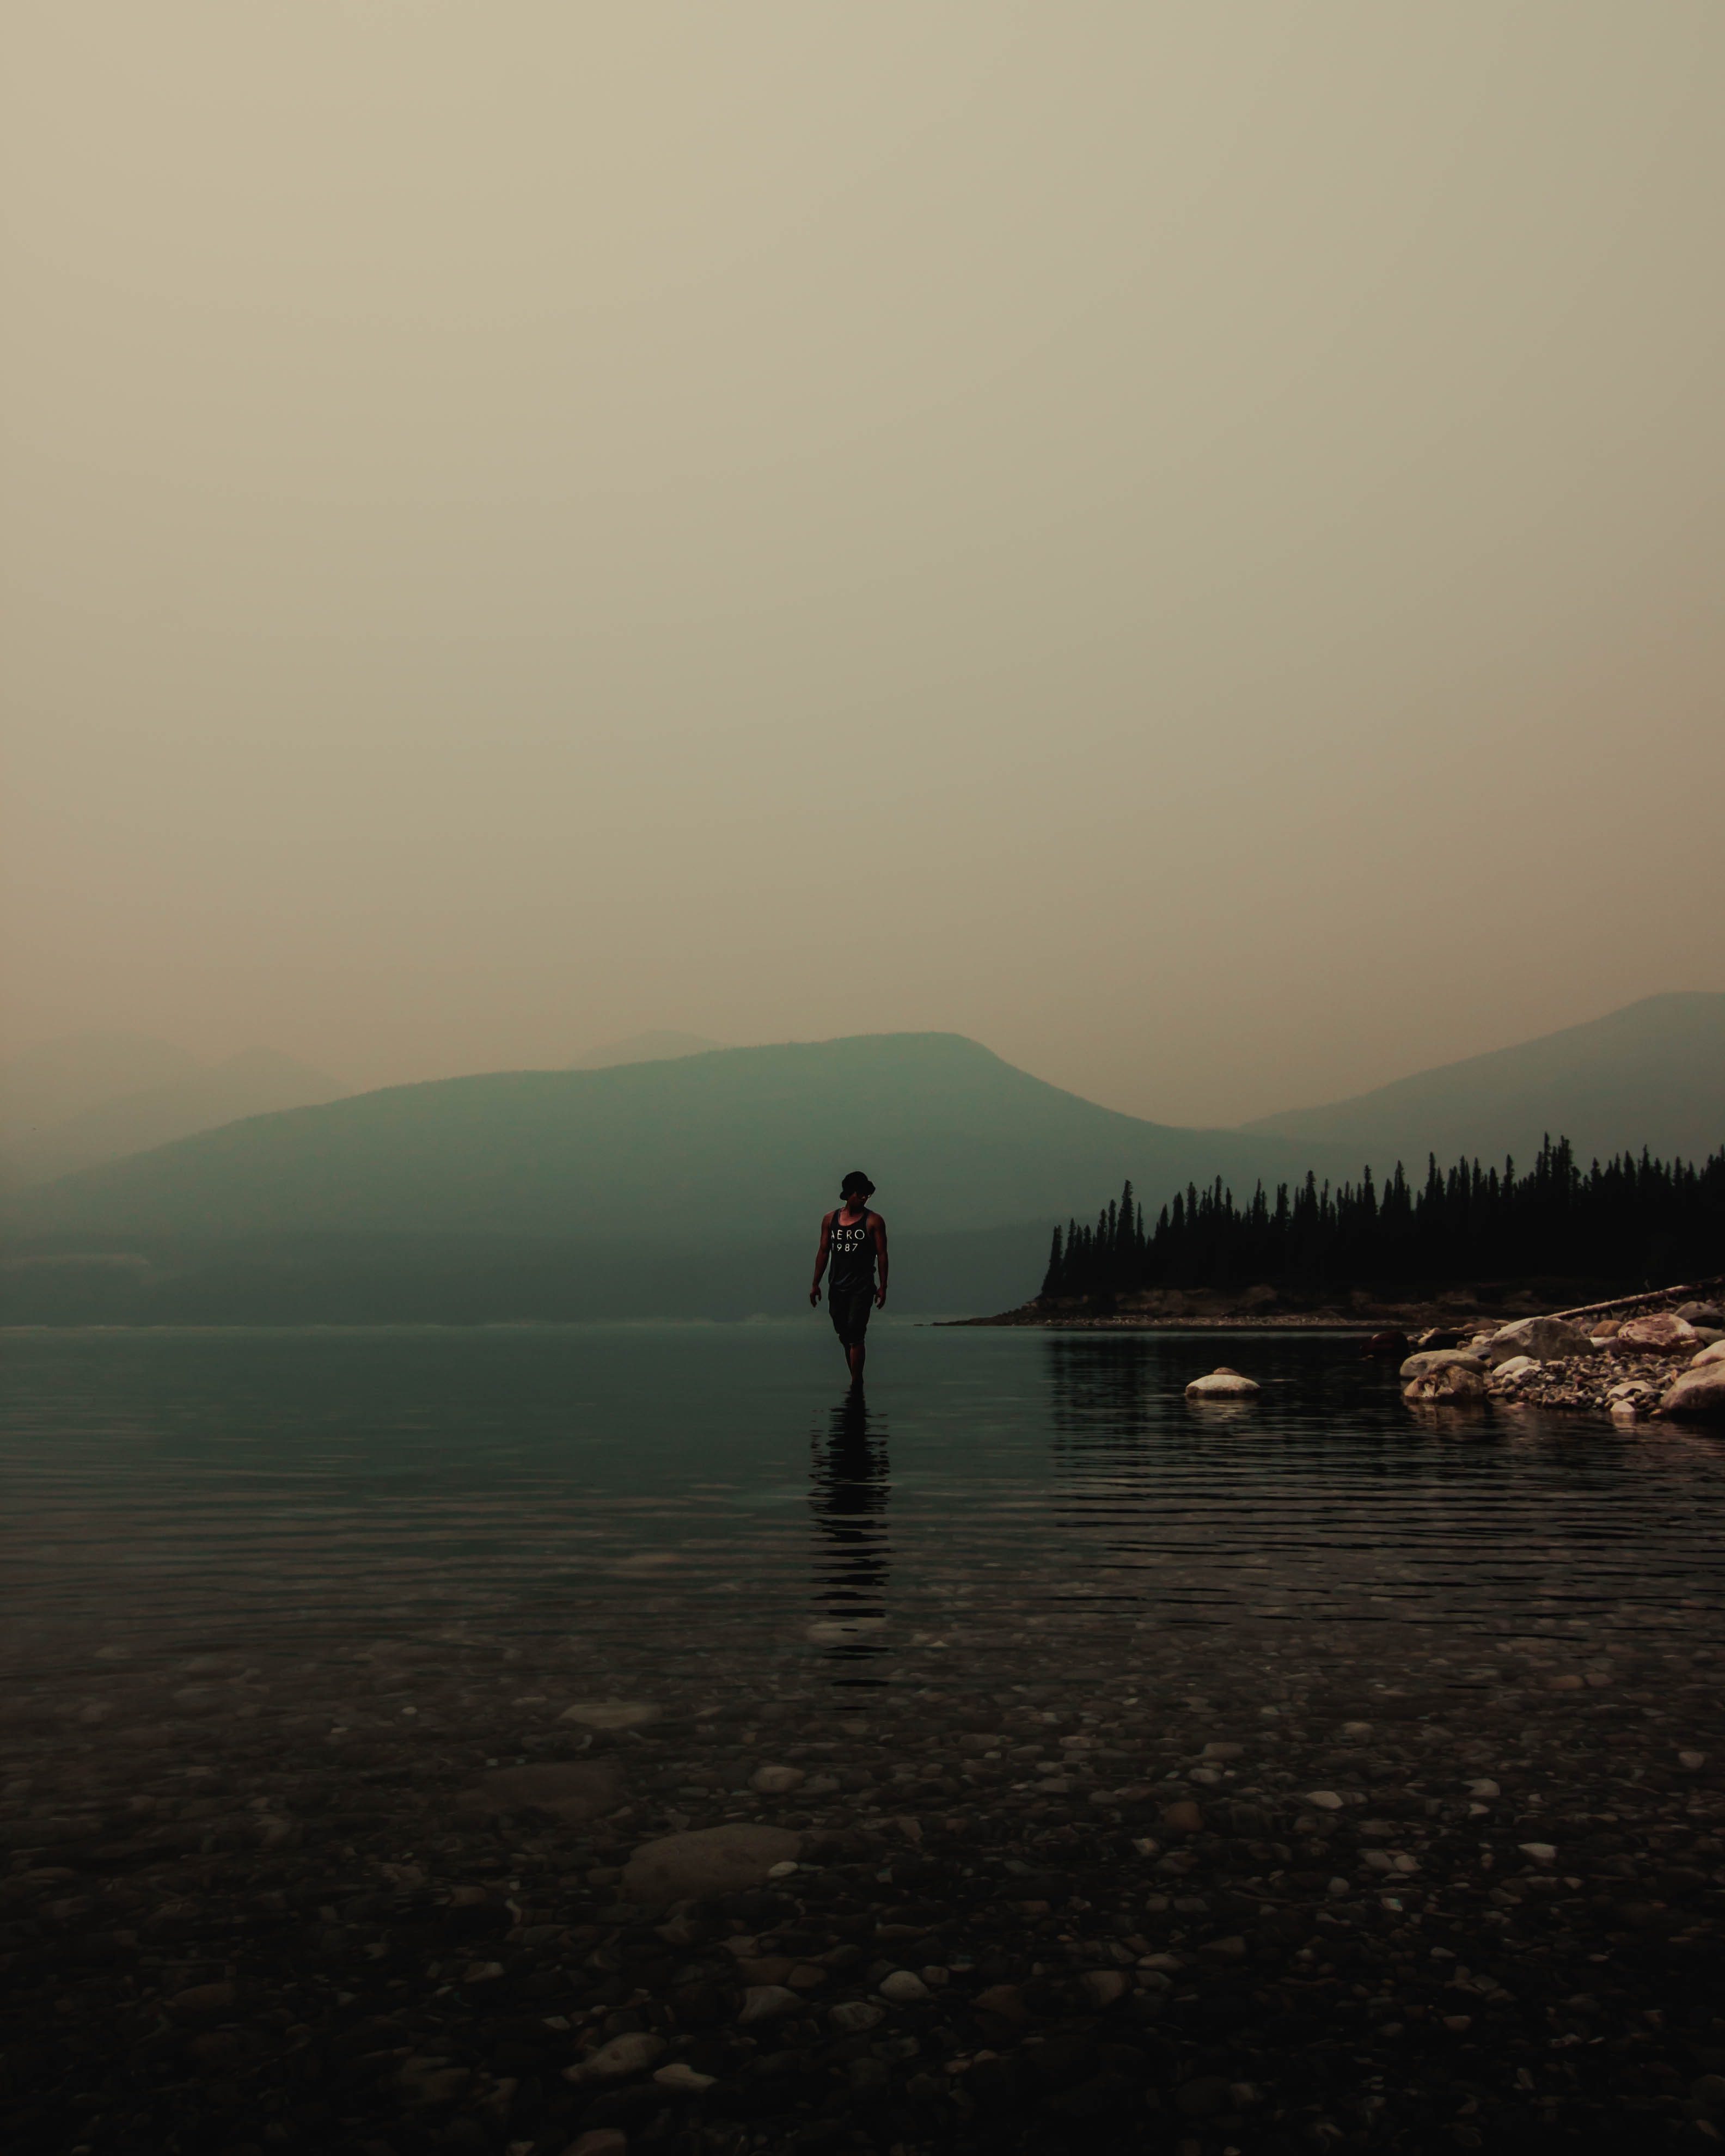 man standing on body of water and view of mountains